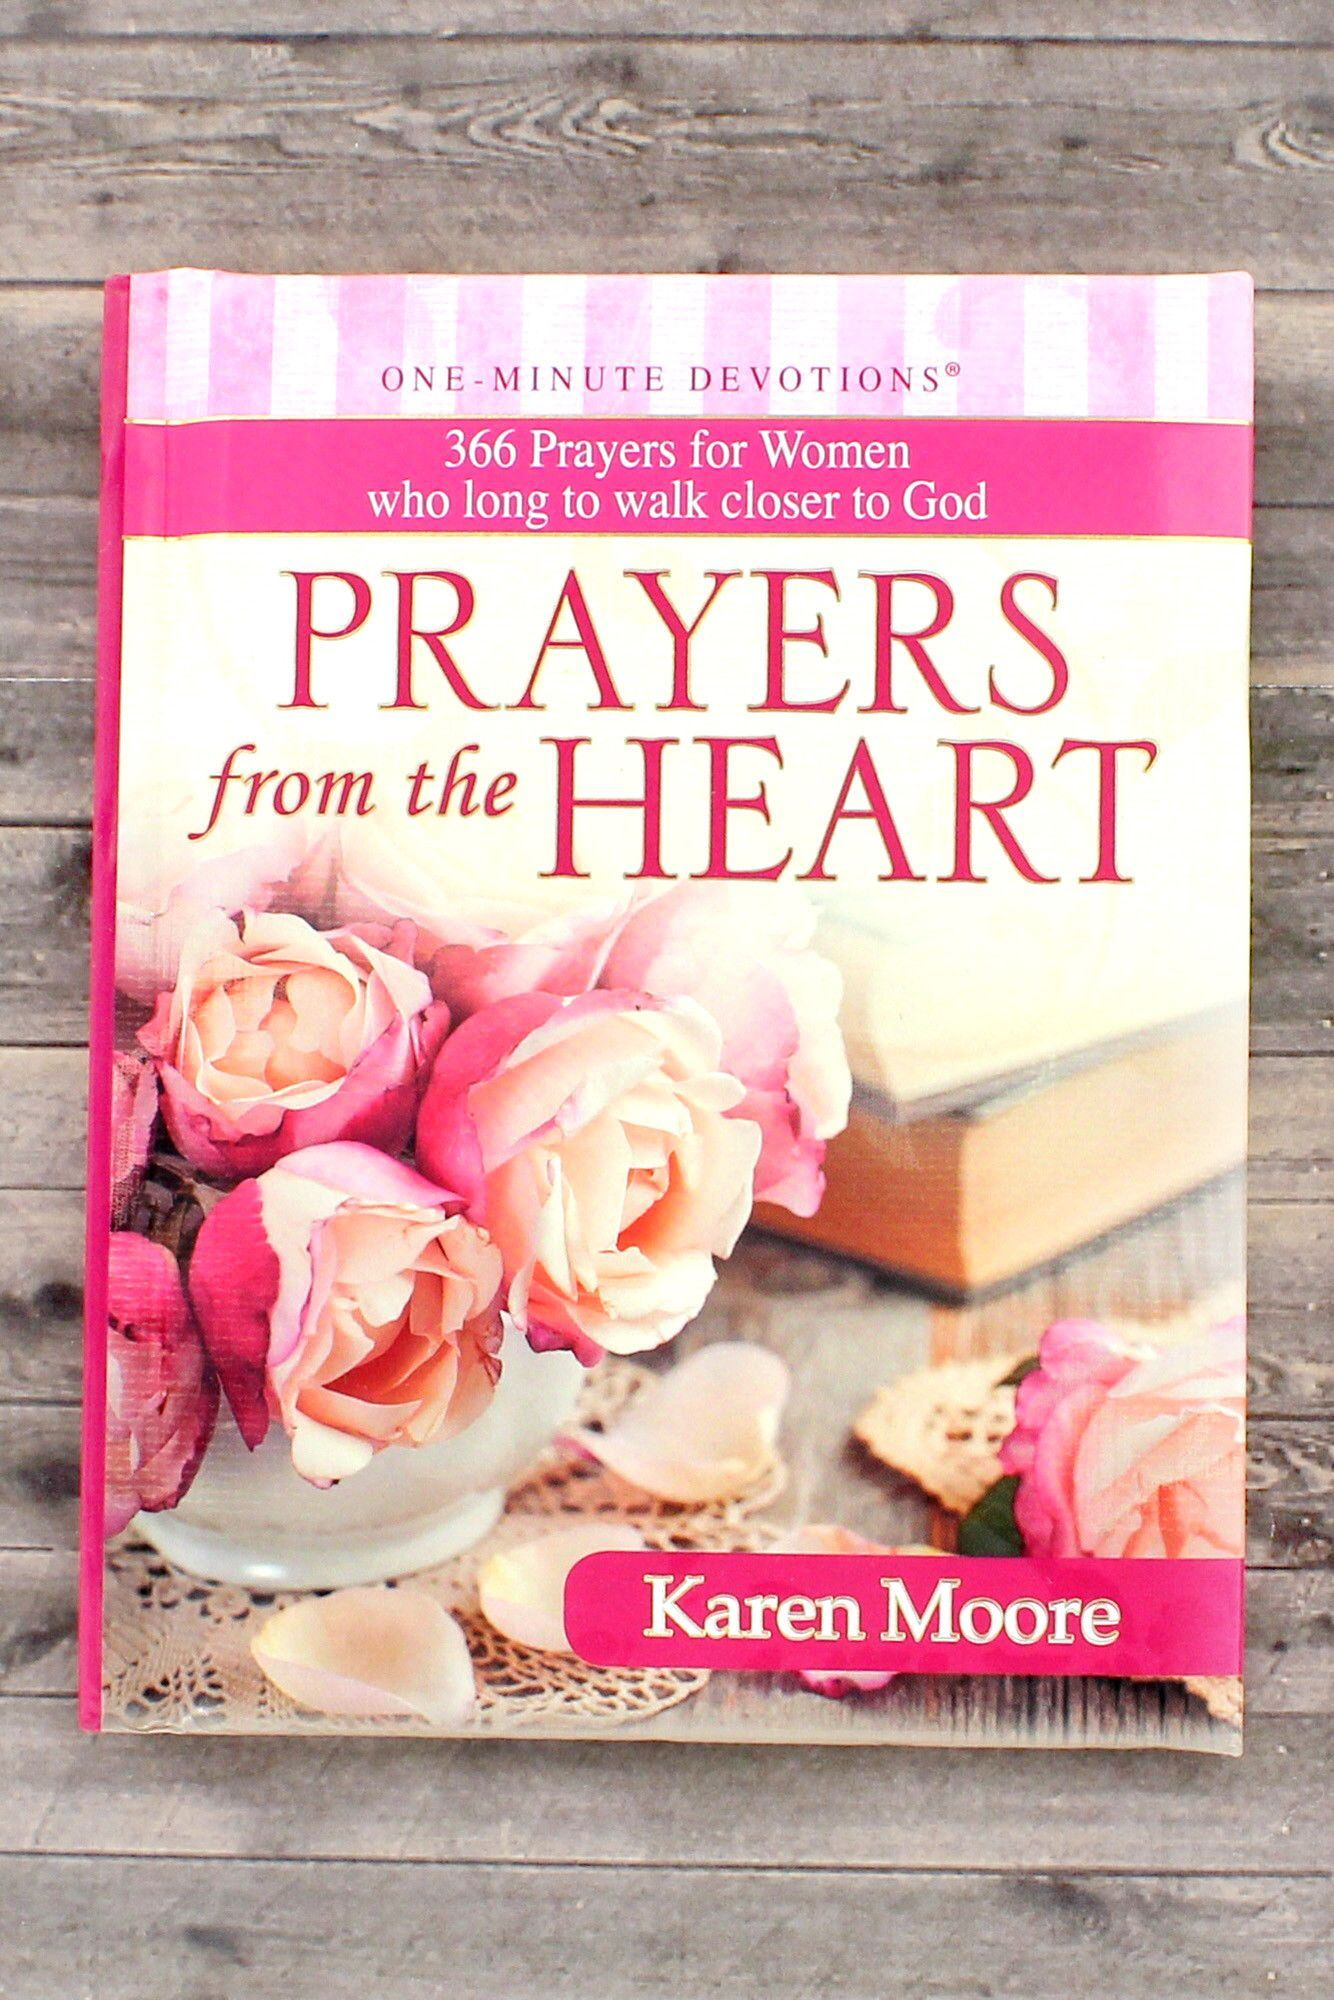 One-Minute Devotions - Prayers from the Heart by Karen Moore #OM050